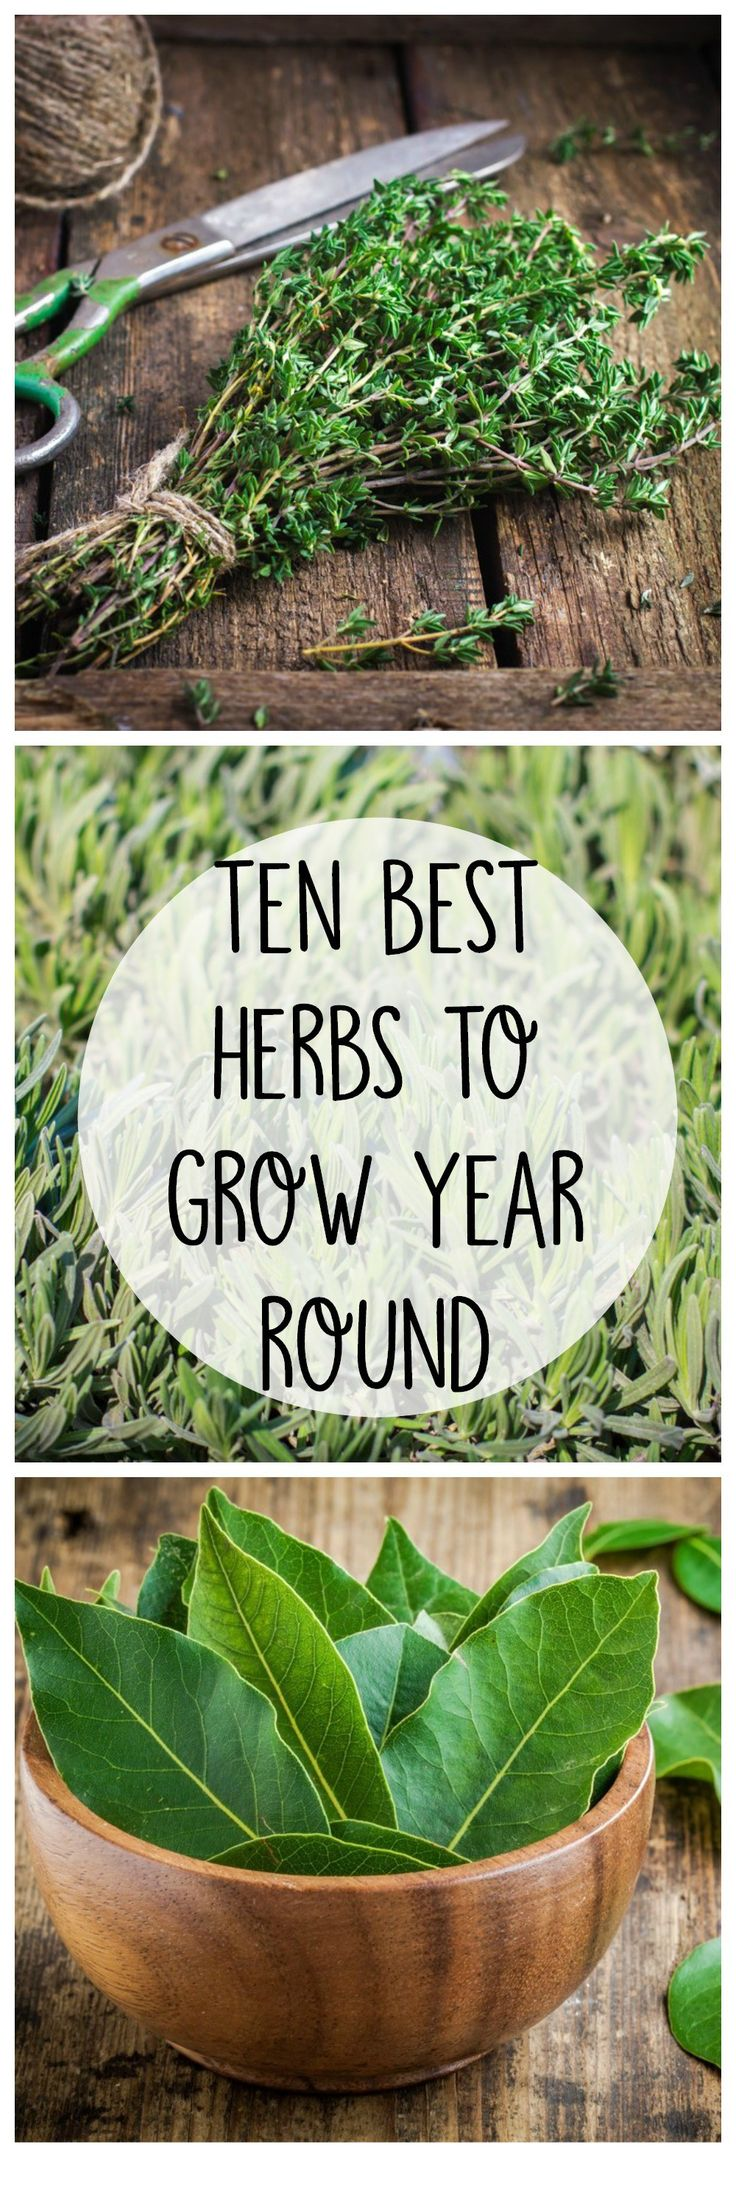 10 Best Herbs To Grow All Year Round. Gardening VegetablesHerb  GardeningIndoor ...